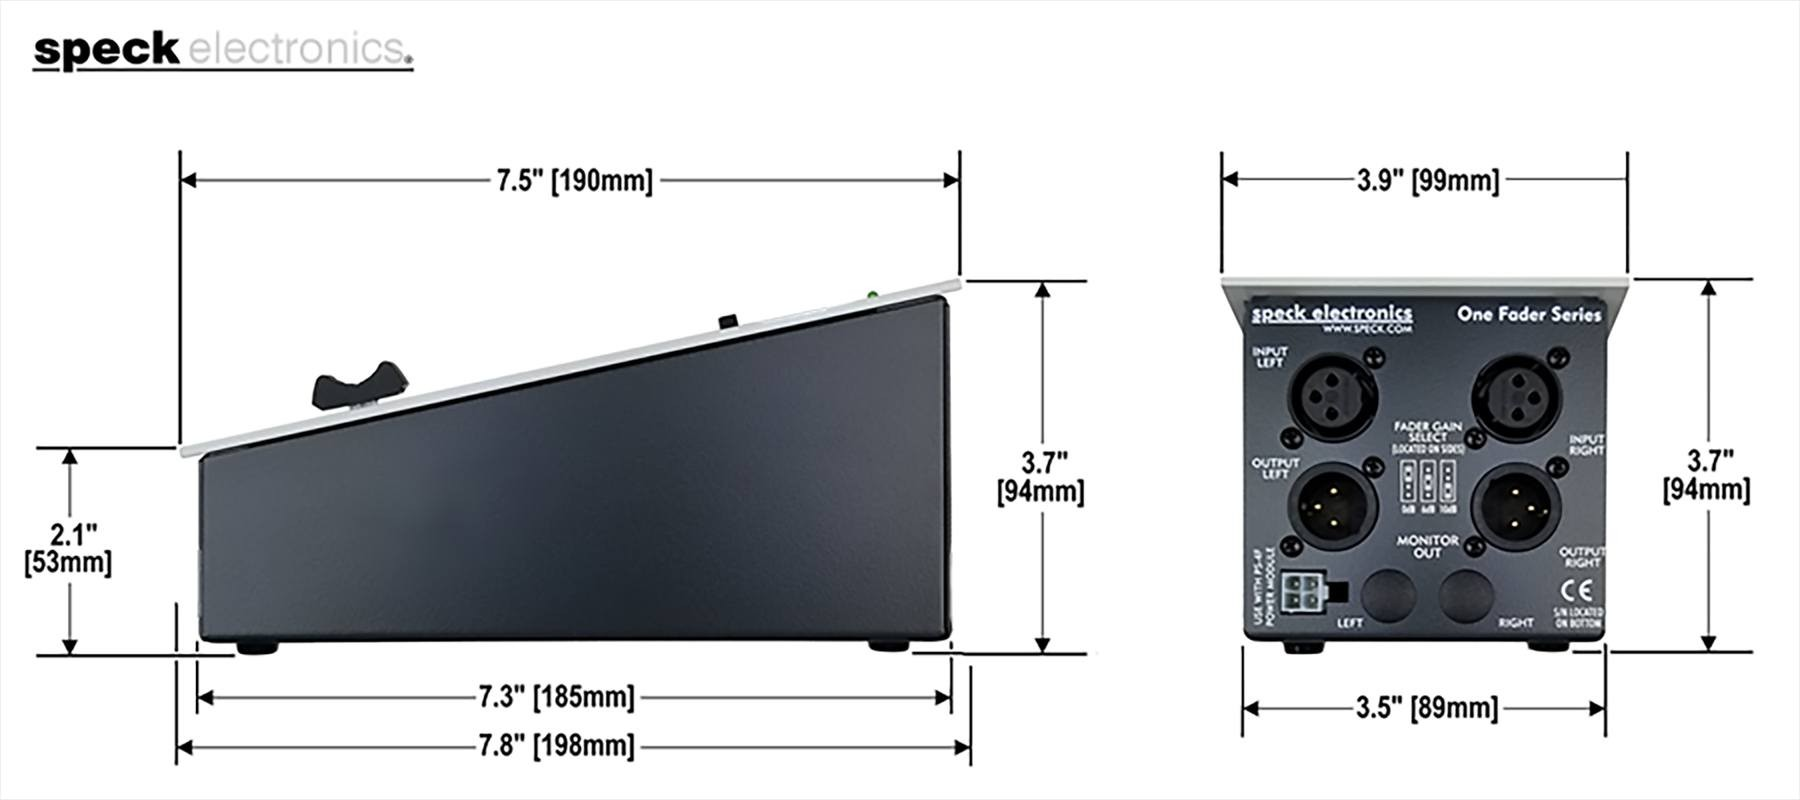 Speck Electronics Fader2